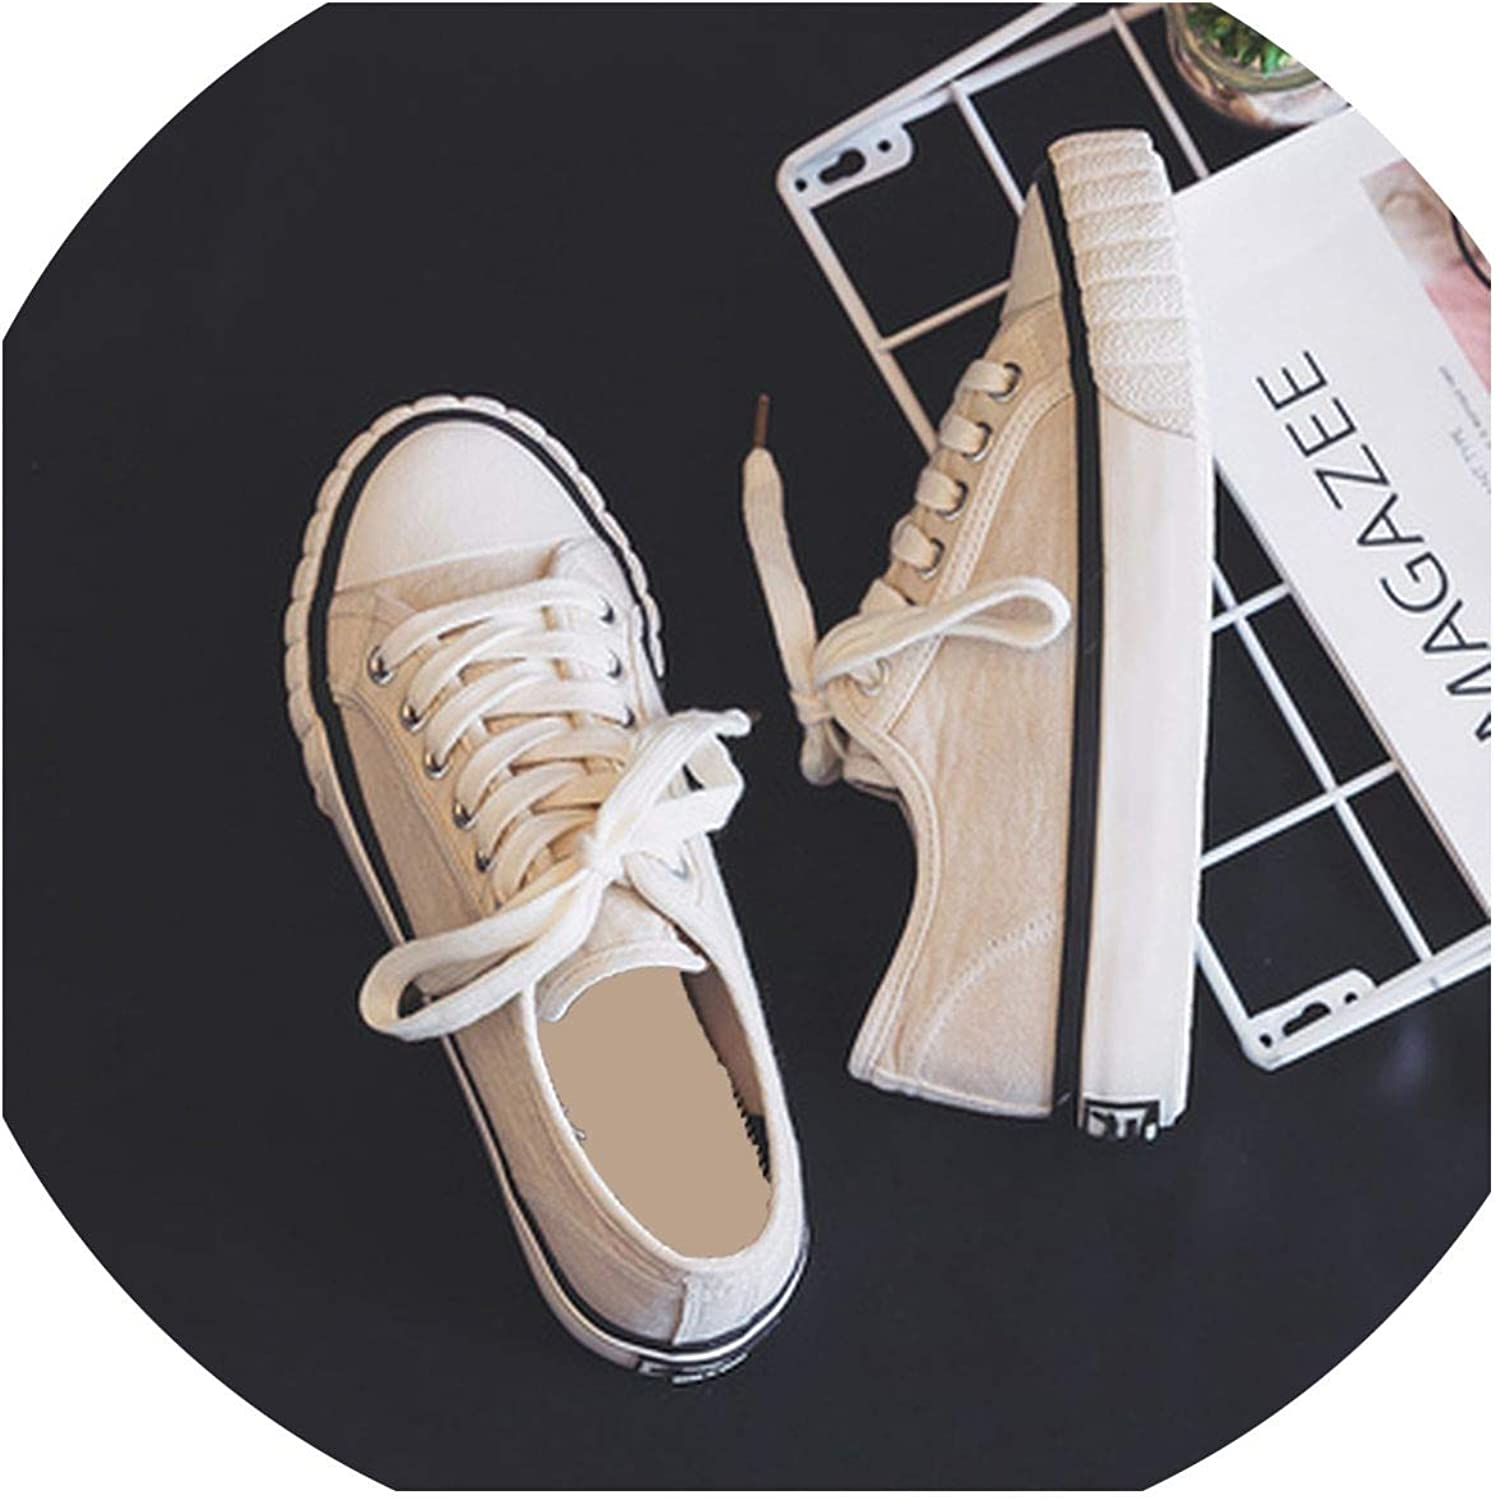 Woman Casual Sneakers Beige Black Ins Trending Style Flat Heel Lace Up Canvas shoes